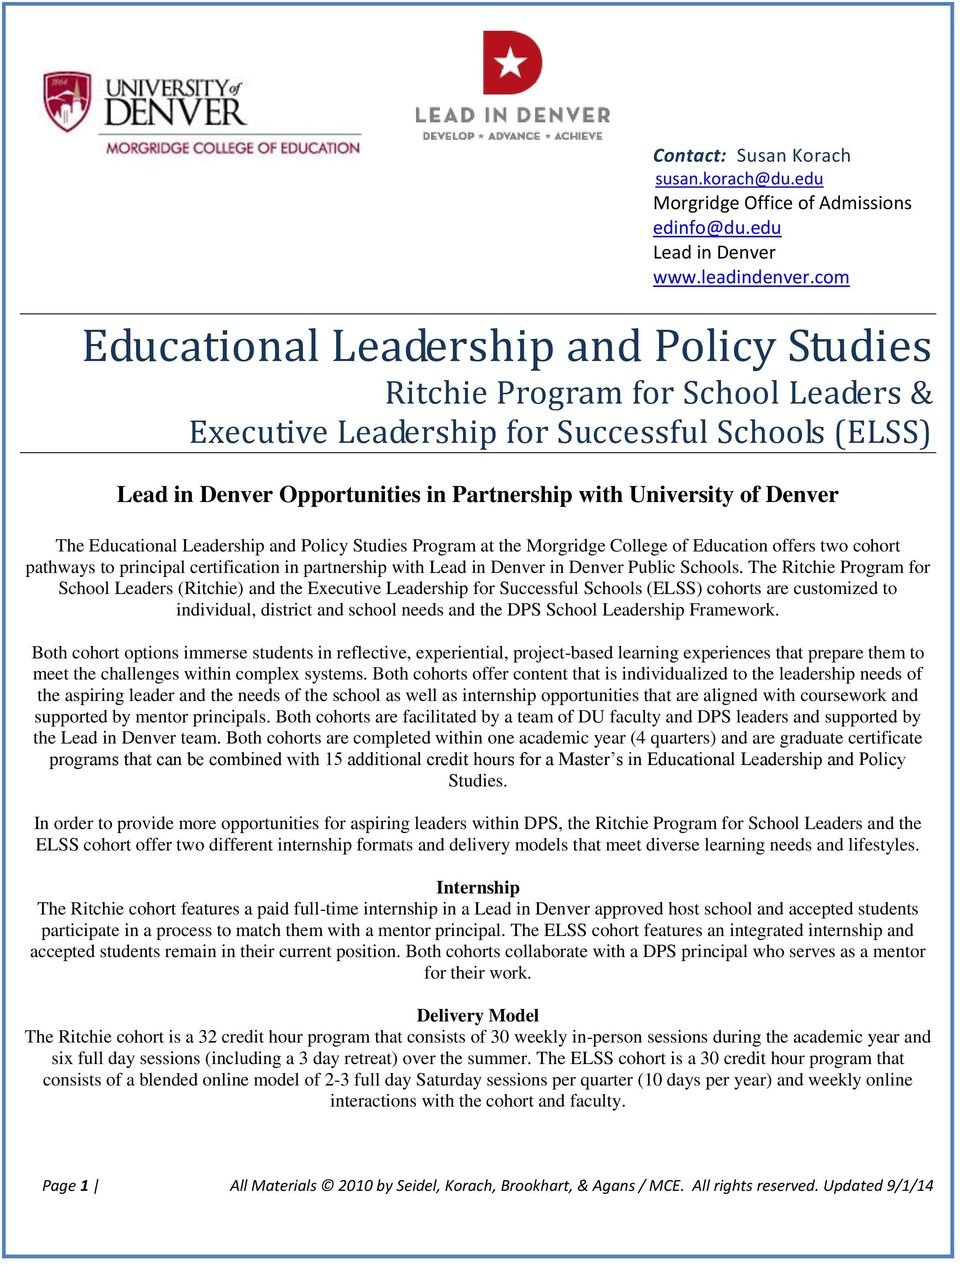 Denver The Educational Leadership and Policy Studies Program at the Morgridge College of Education offers two cohort pathways to principal certification in partnership with Lead in Denver in Denver